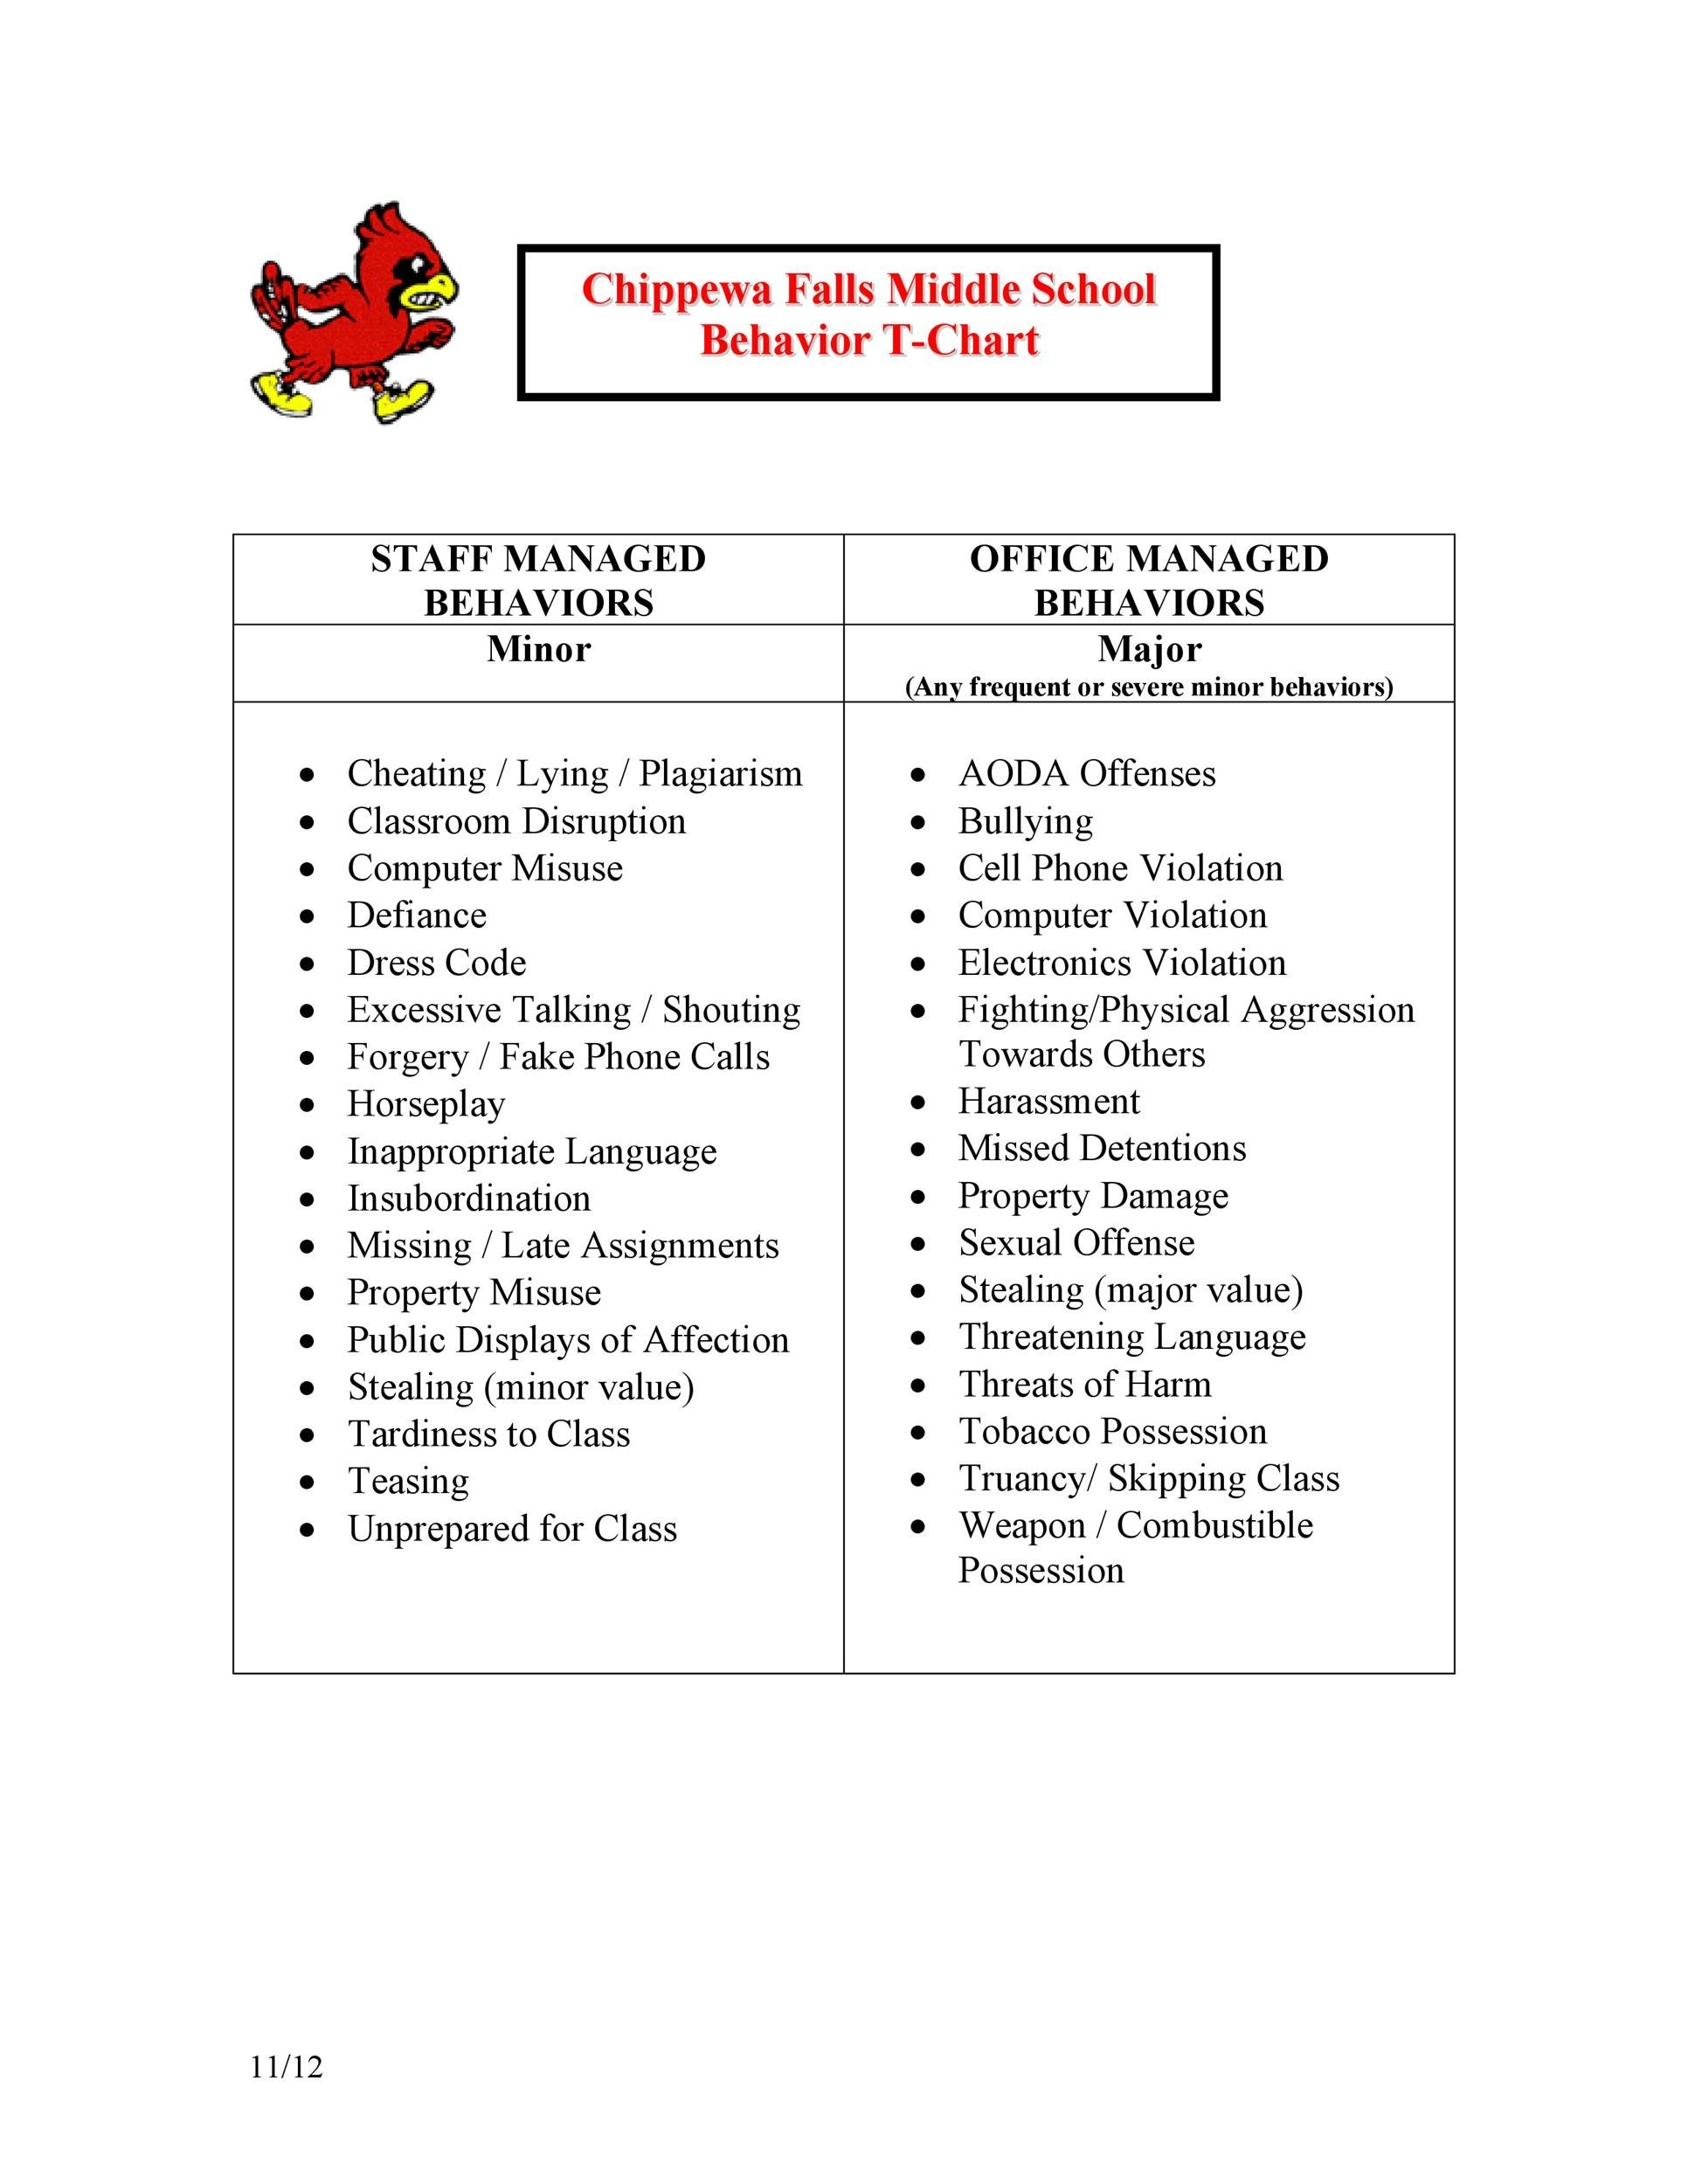 Free behavior chart 10